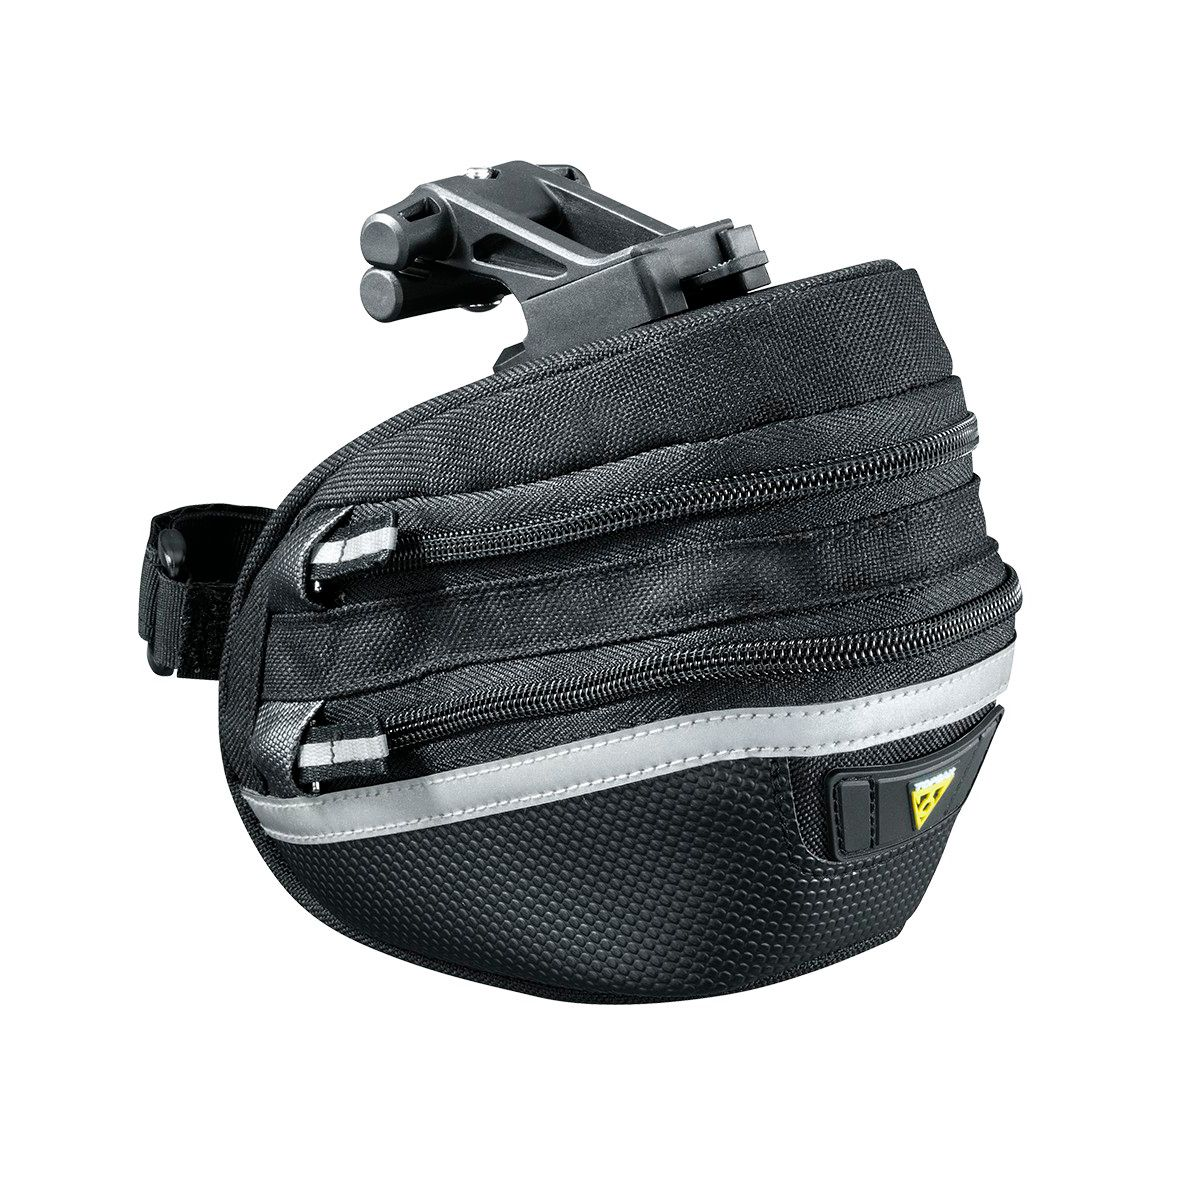 Topeak Wedge Pack 2 Medium saddle bag | Saddle bags